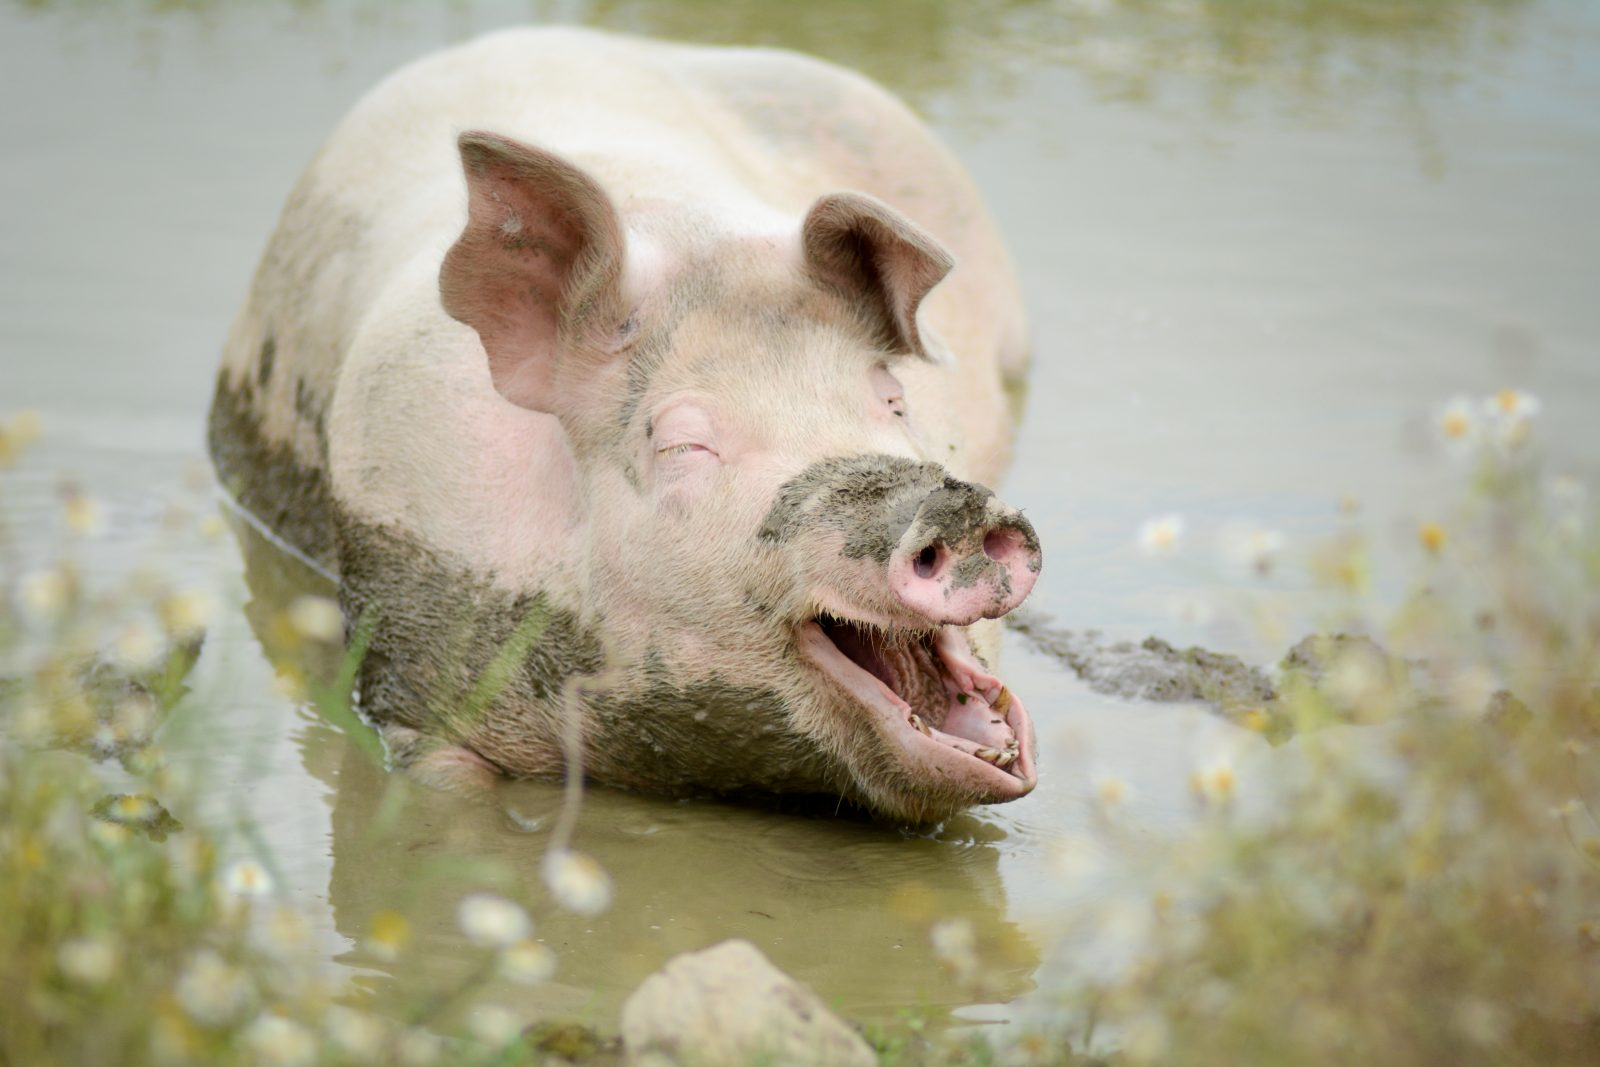 Mia pig in the mud at Farm Sanctuary